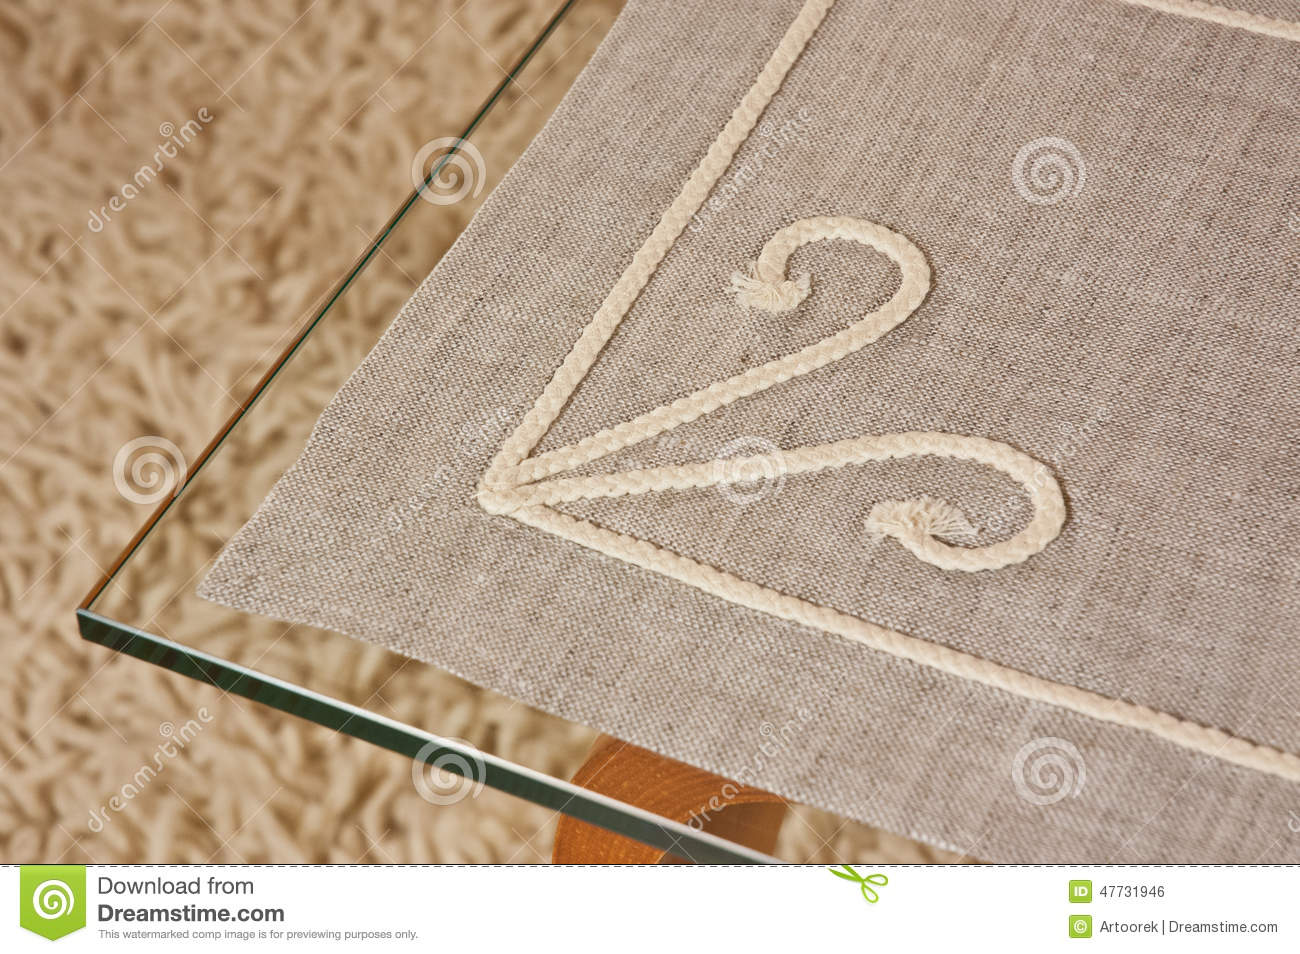 Perfect Linen Tablecloth On A Glass Table Stock Photo   Image Of Background,  Checks: 47731946